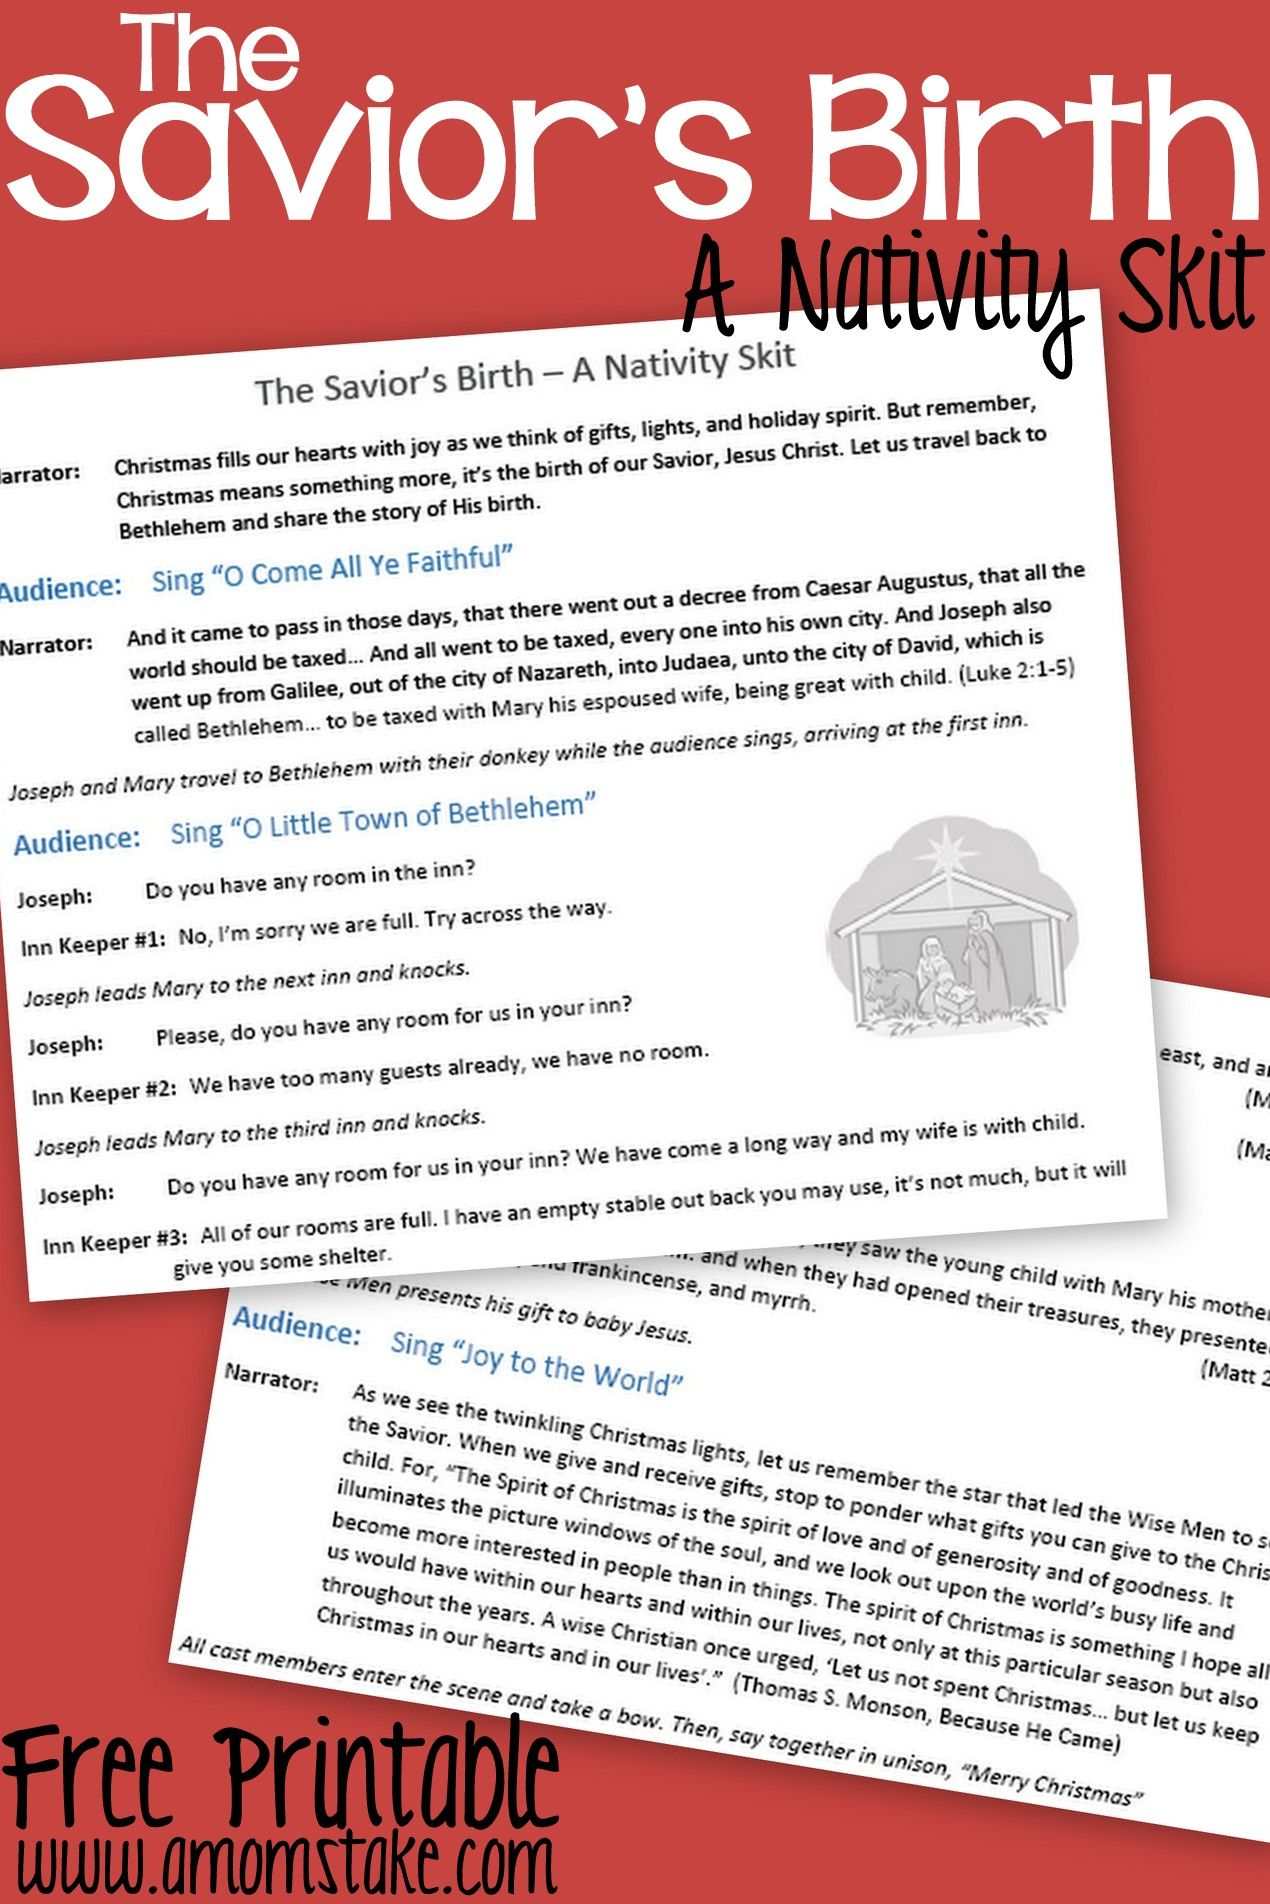 Free printable Nativity Skit to act out the birth of the